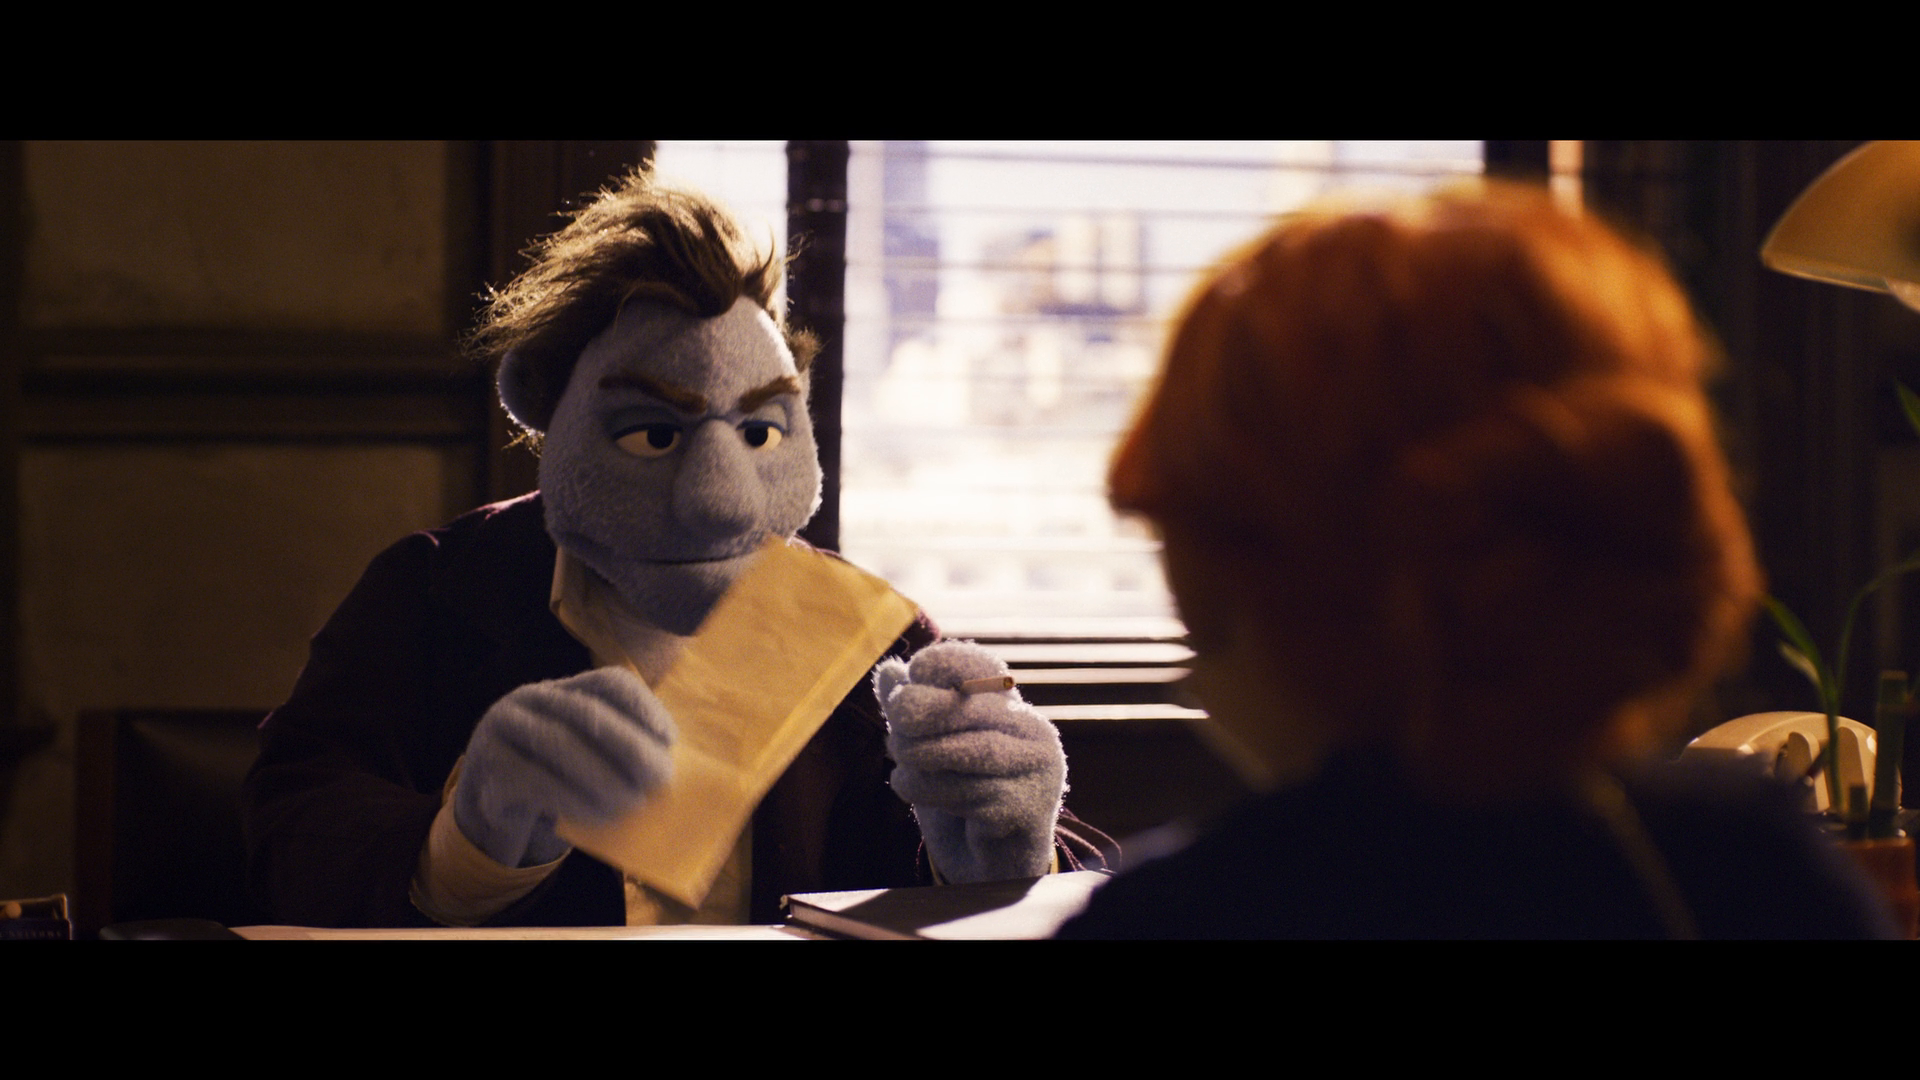 Download The Happytime Murders 2018 1080p BluRay REMUX AVC DTS-HD MA 5 1-F Torrent